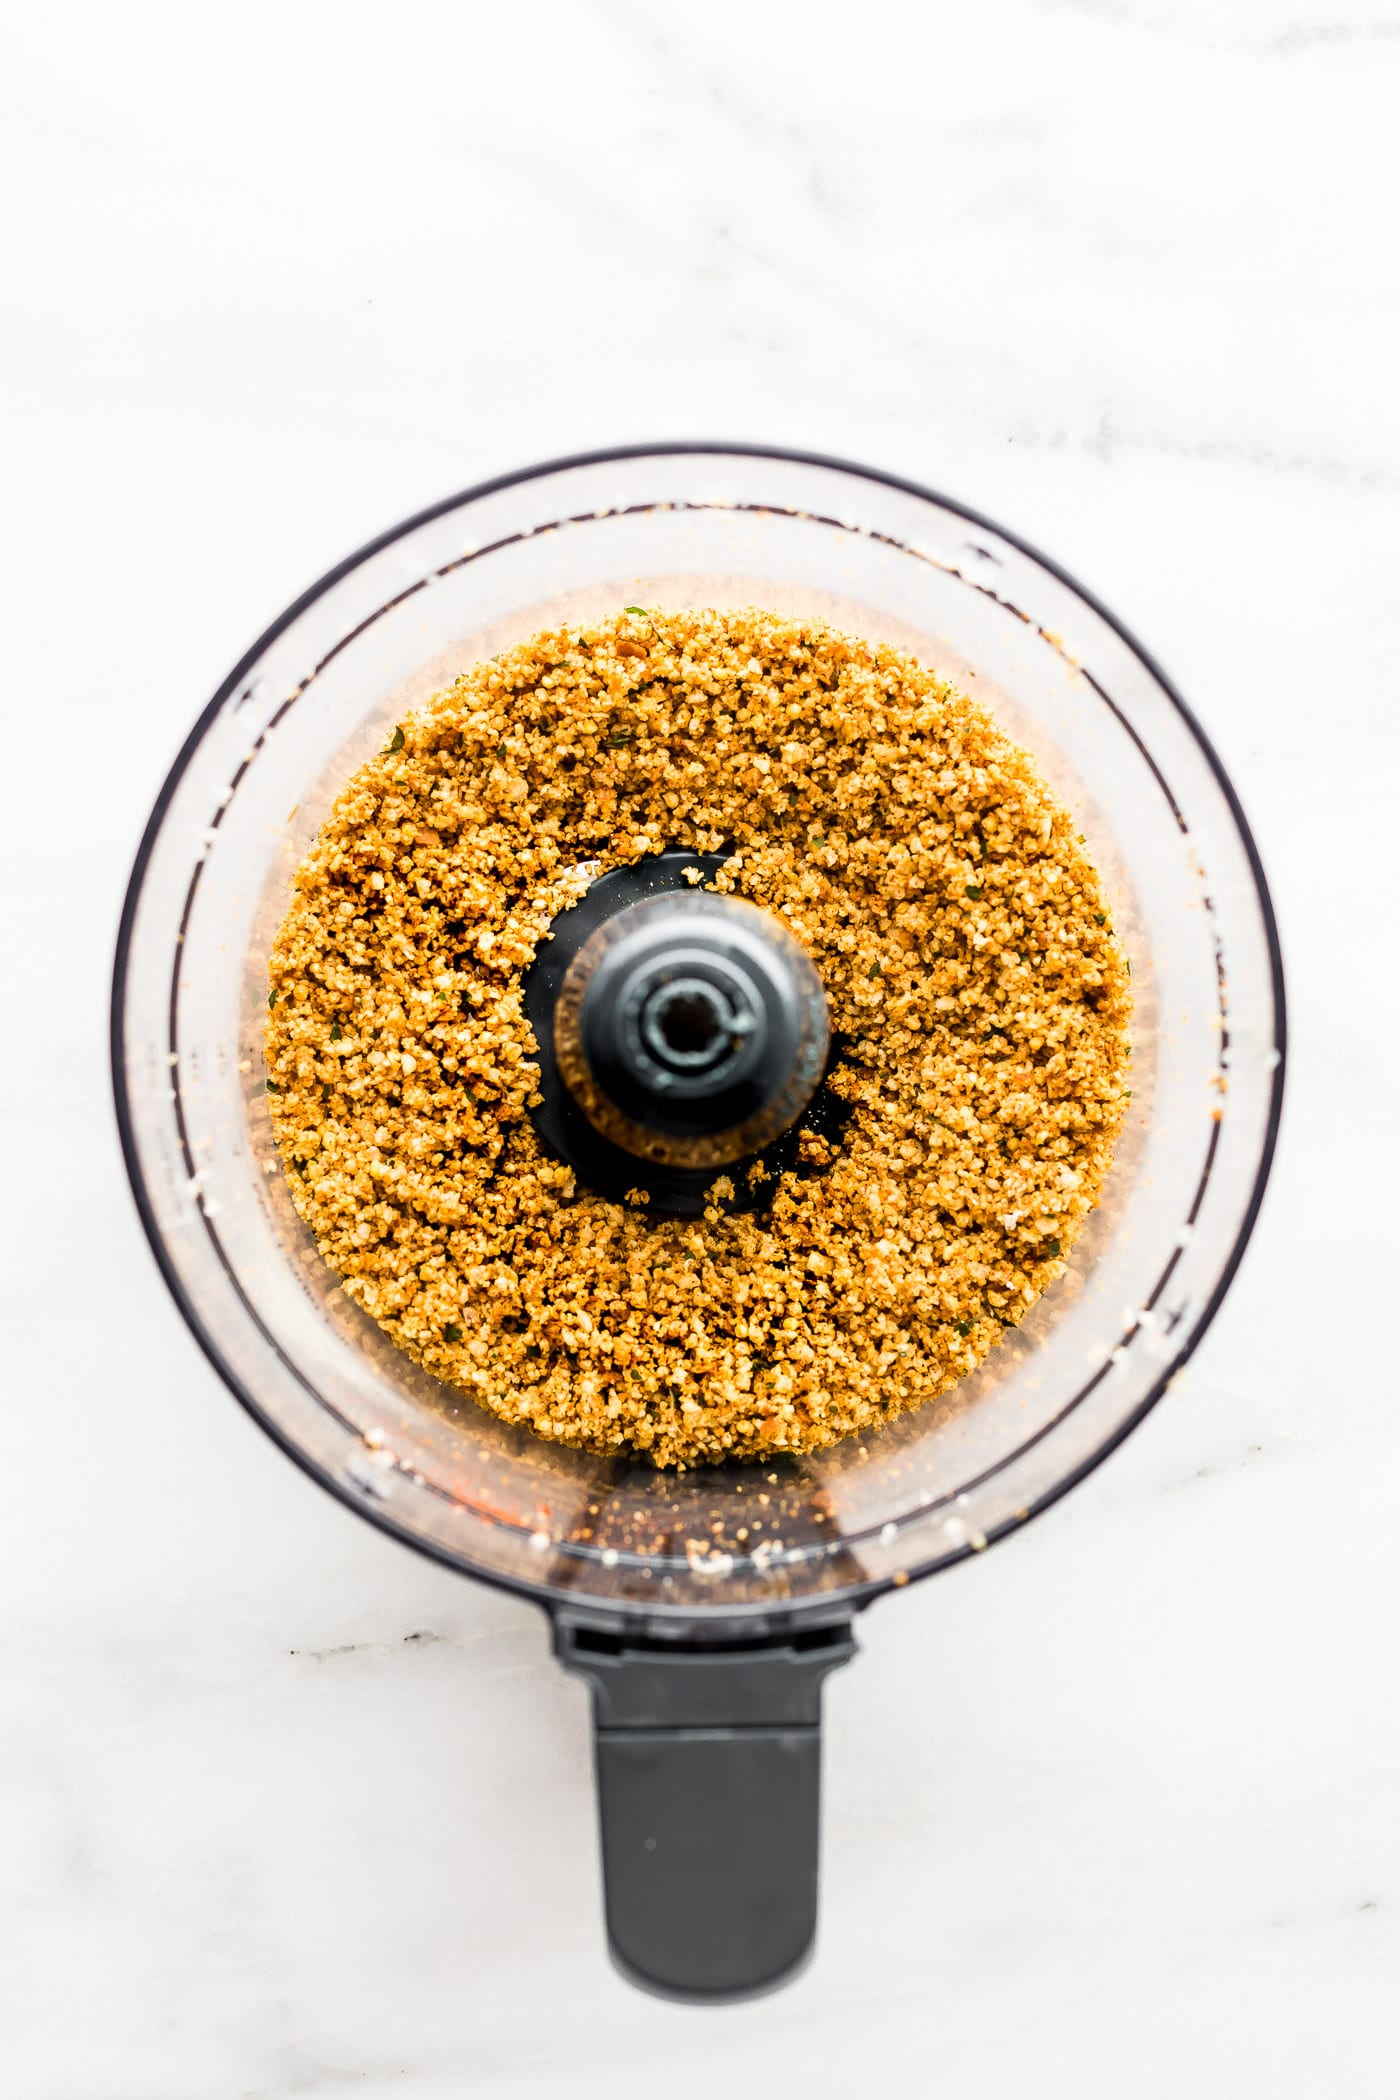 Gluten-Free Panko breadcrumbs in a food processor